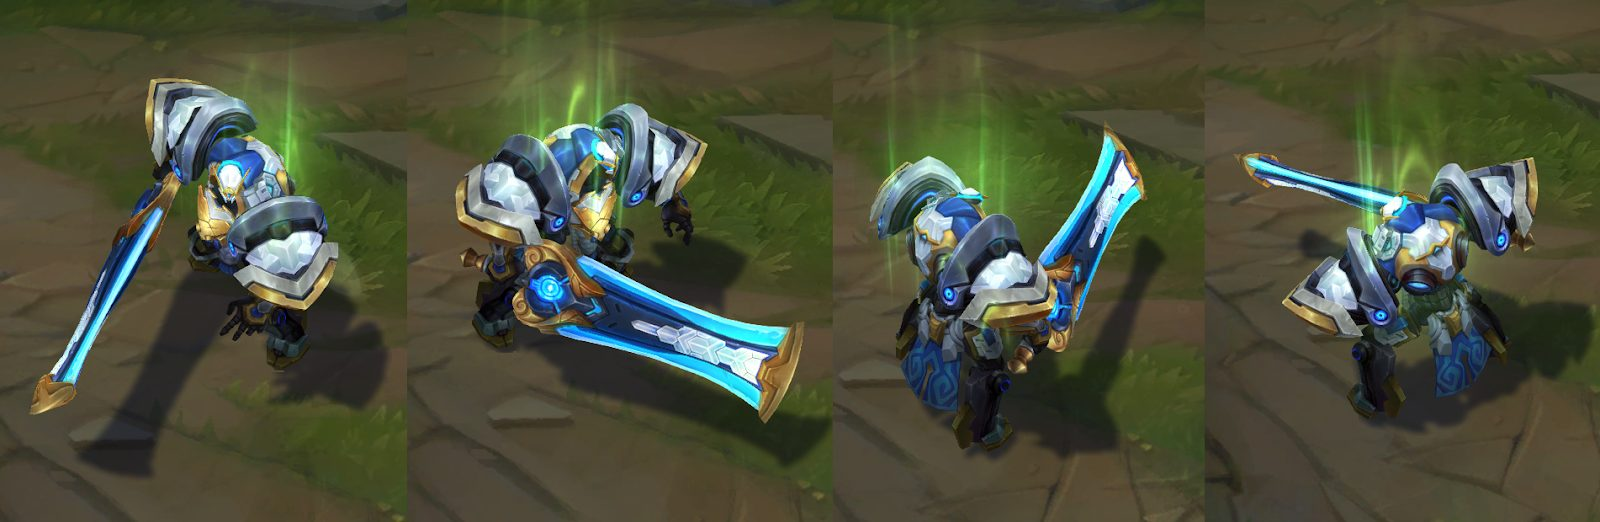 mecha kingdoms garen skin for league of legends ingame picture